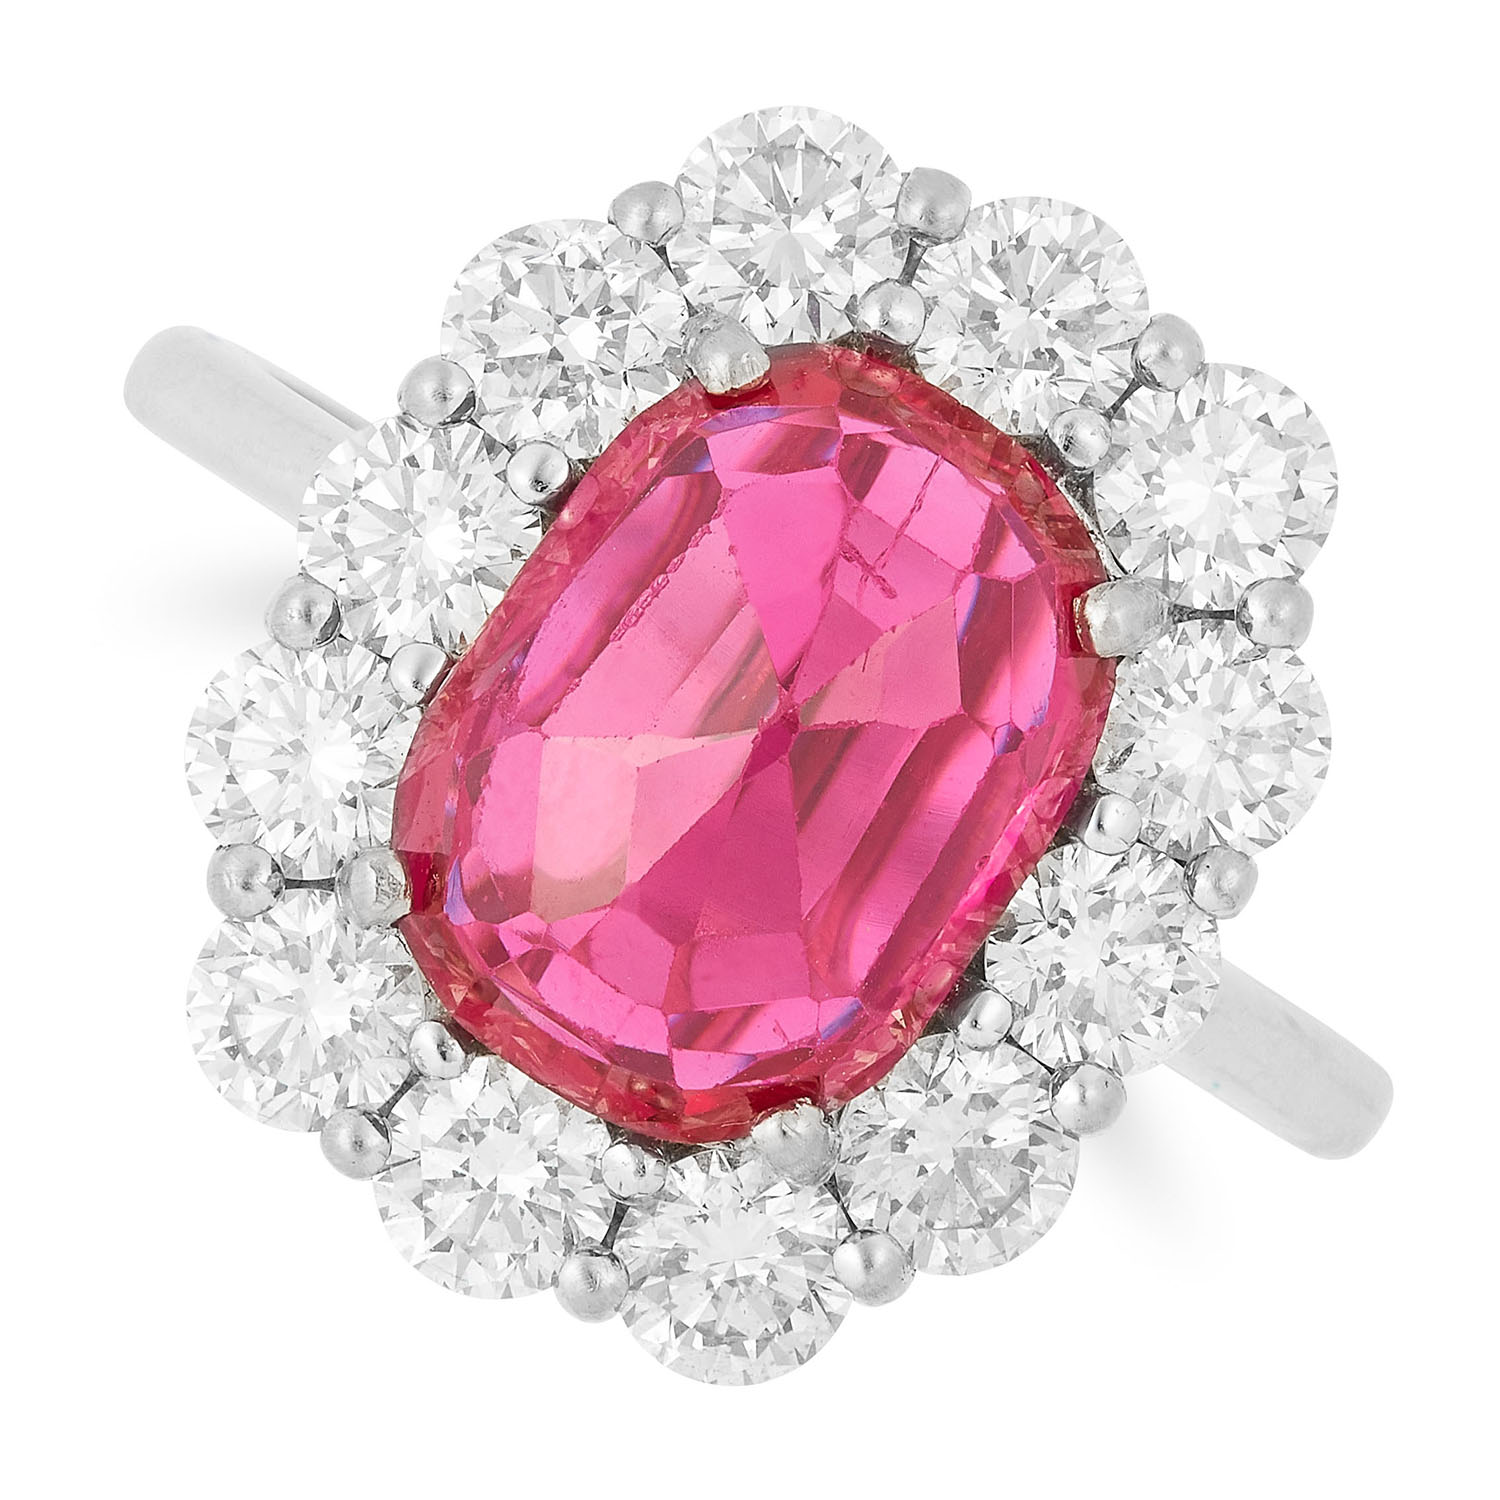 RUBY AND DIAMOND CLUSTER RING set with an oval faceted ruby in a cluster of round cut diamonds, size